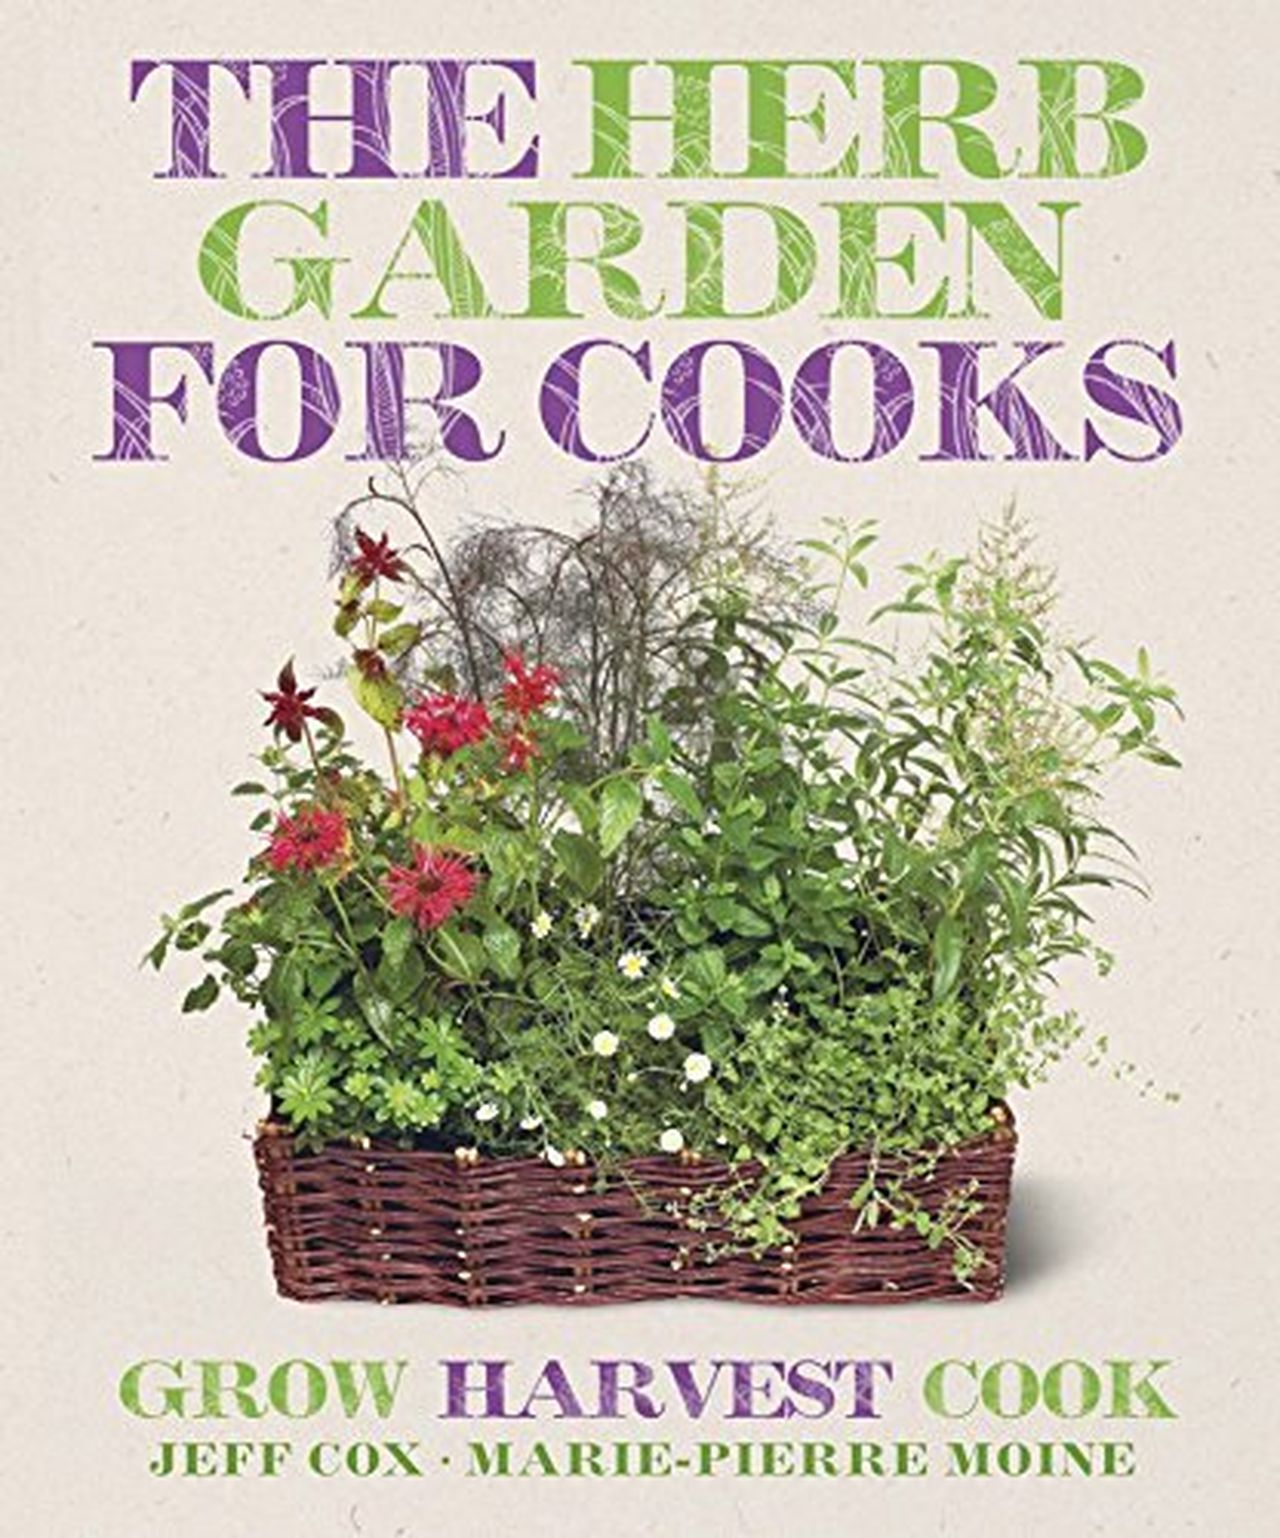 The Cook's Herb Garden by Jeff Cox and Marie-Pierre Moine